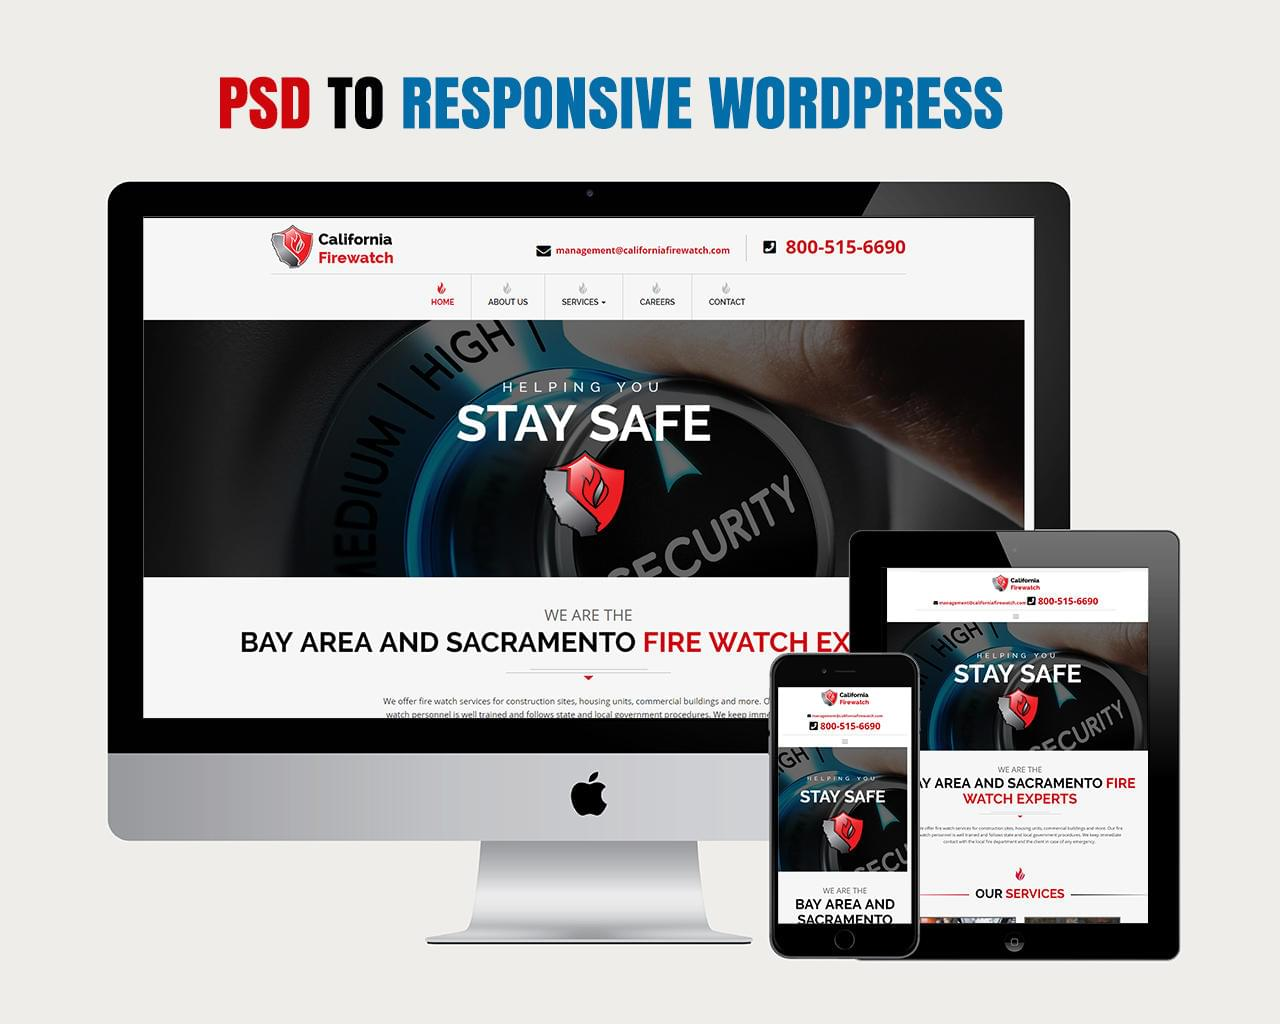 PSD to Responsive Wordpress by kreativenet - 114769